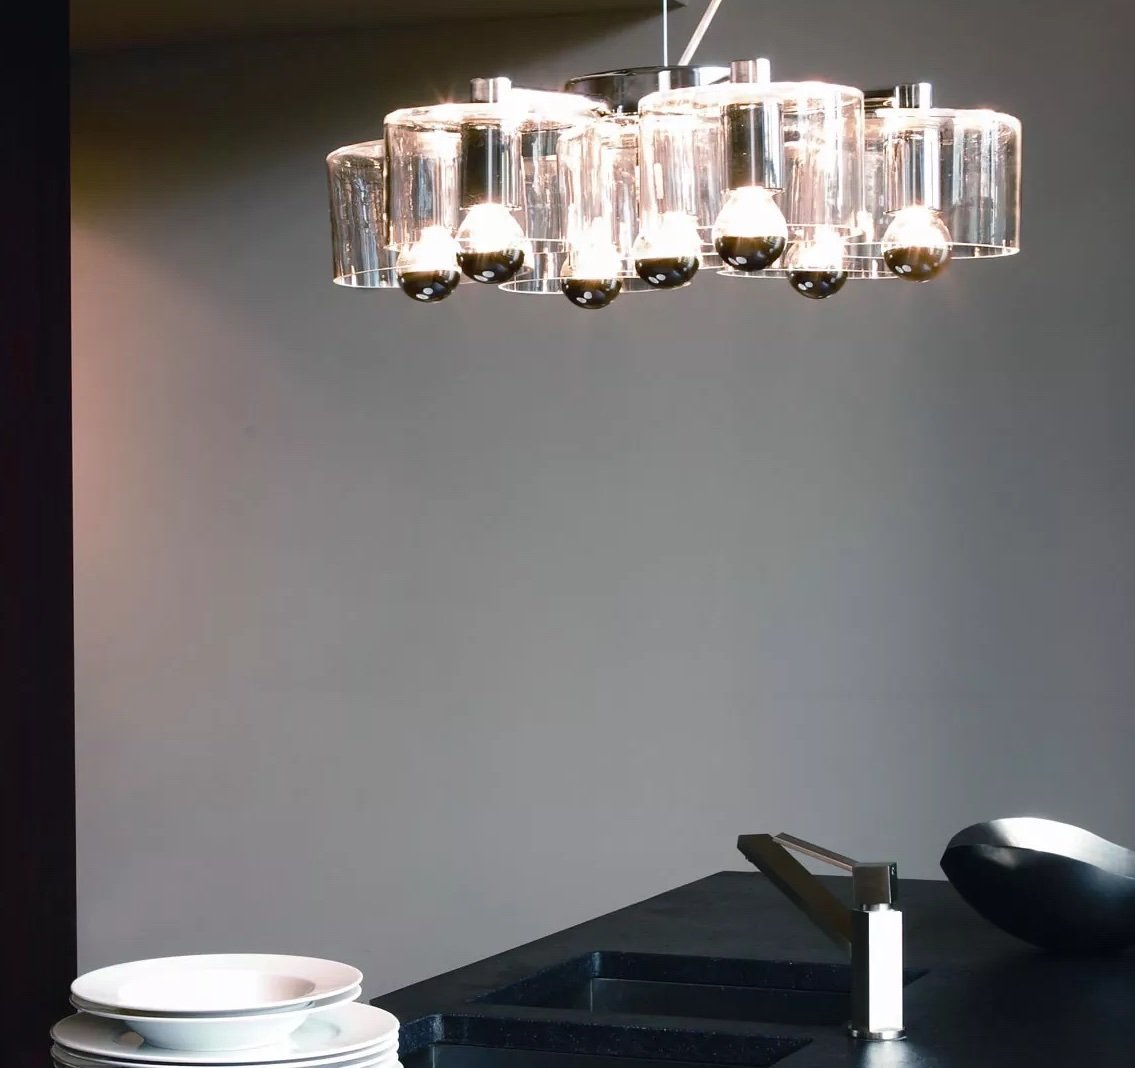 Fiore Suspension Lamp lighting from Oluce, designed by Marta Laudani and Marco Romanelli